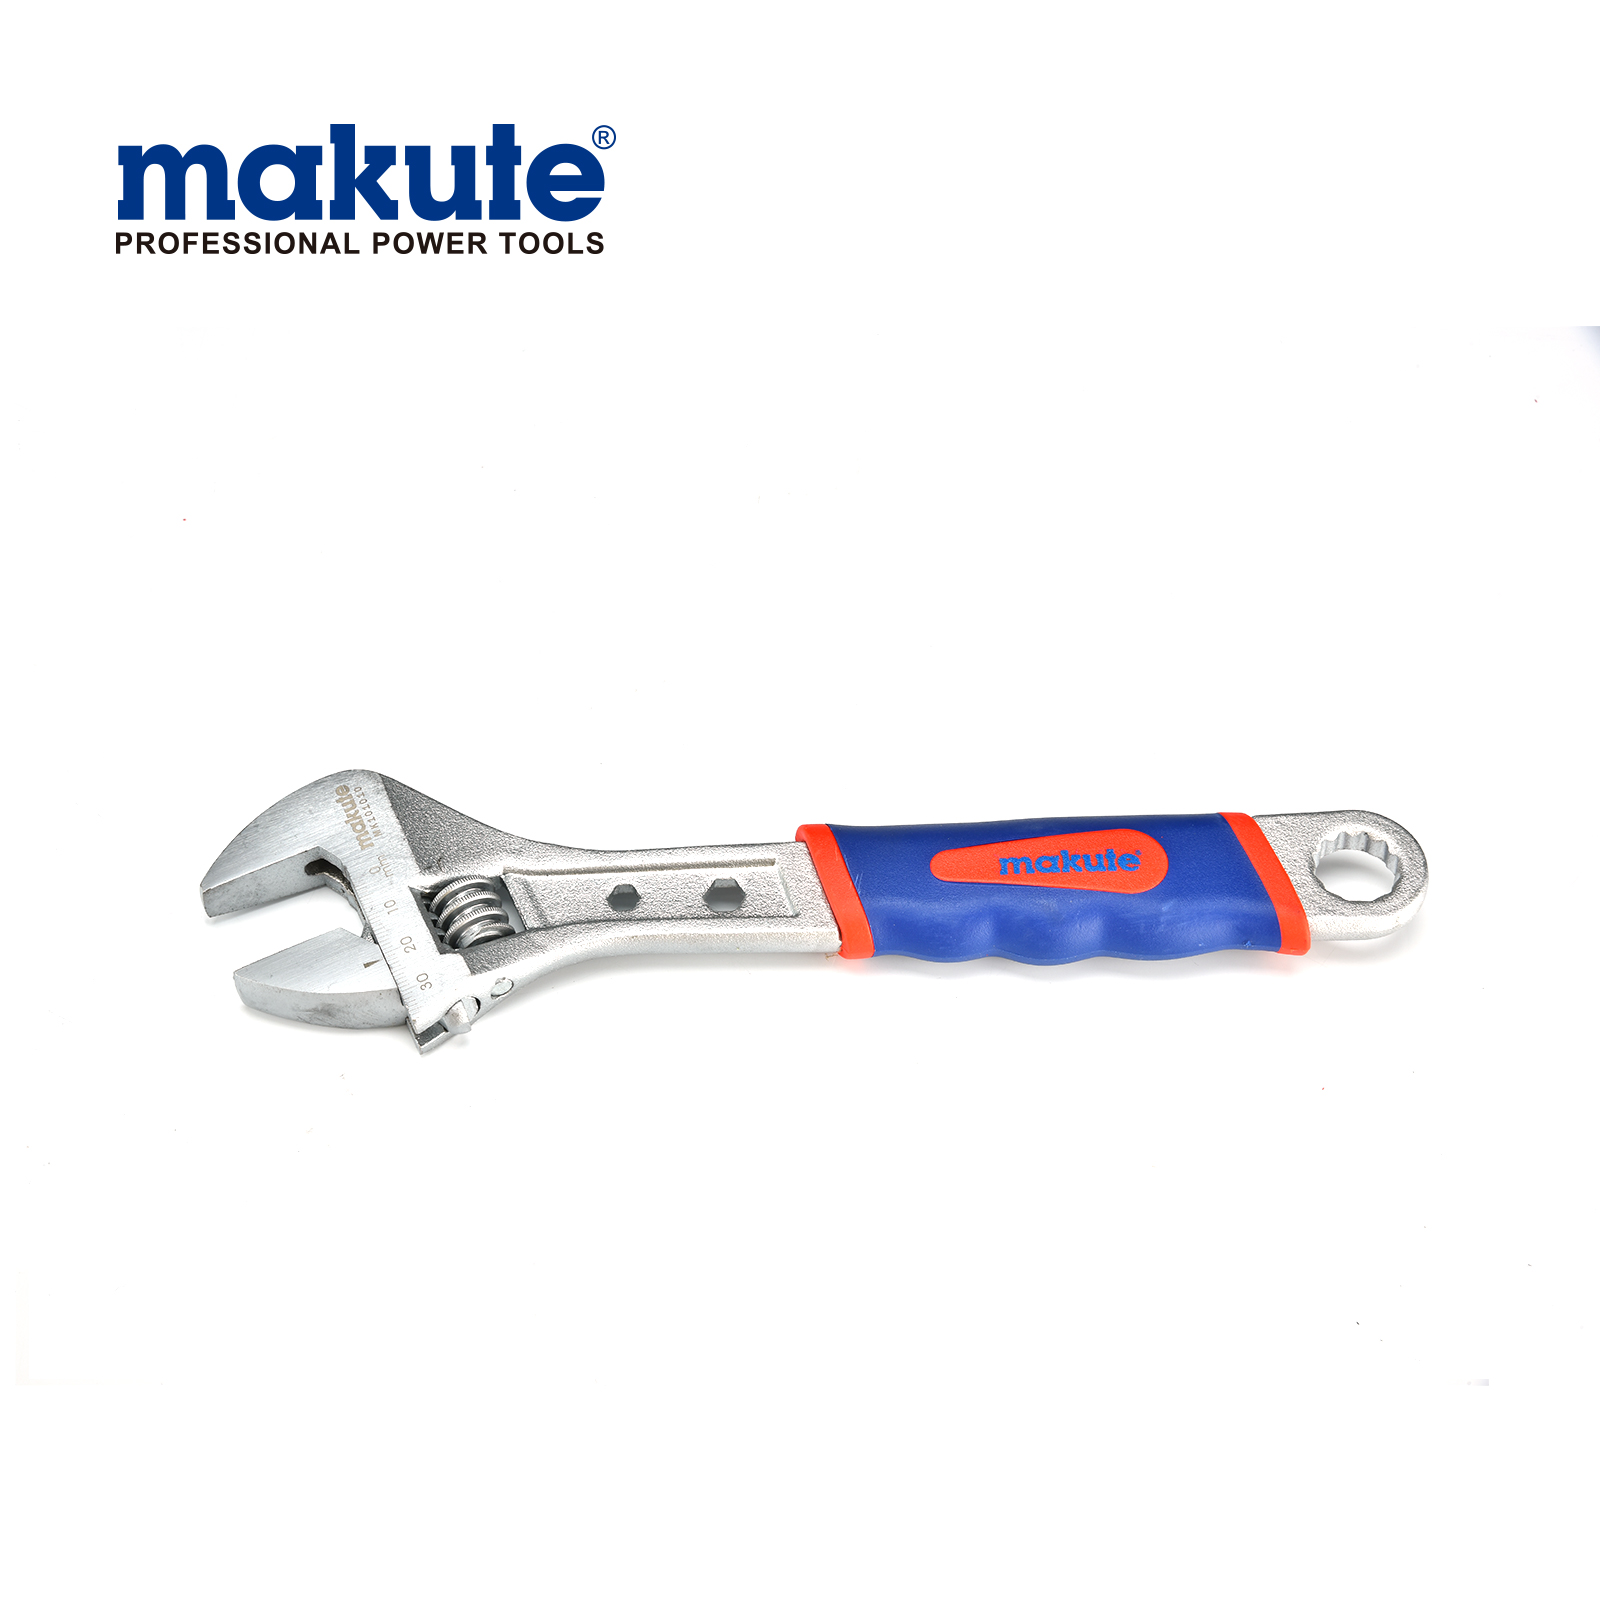 "Adjustable wrench 250mm(10"") MK101010 adjustable torque wrench spanner multi tools"